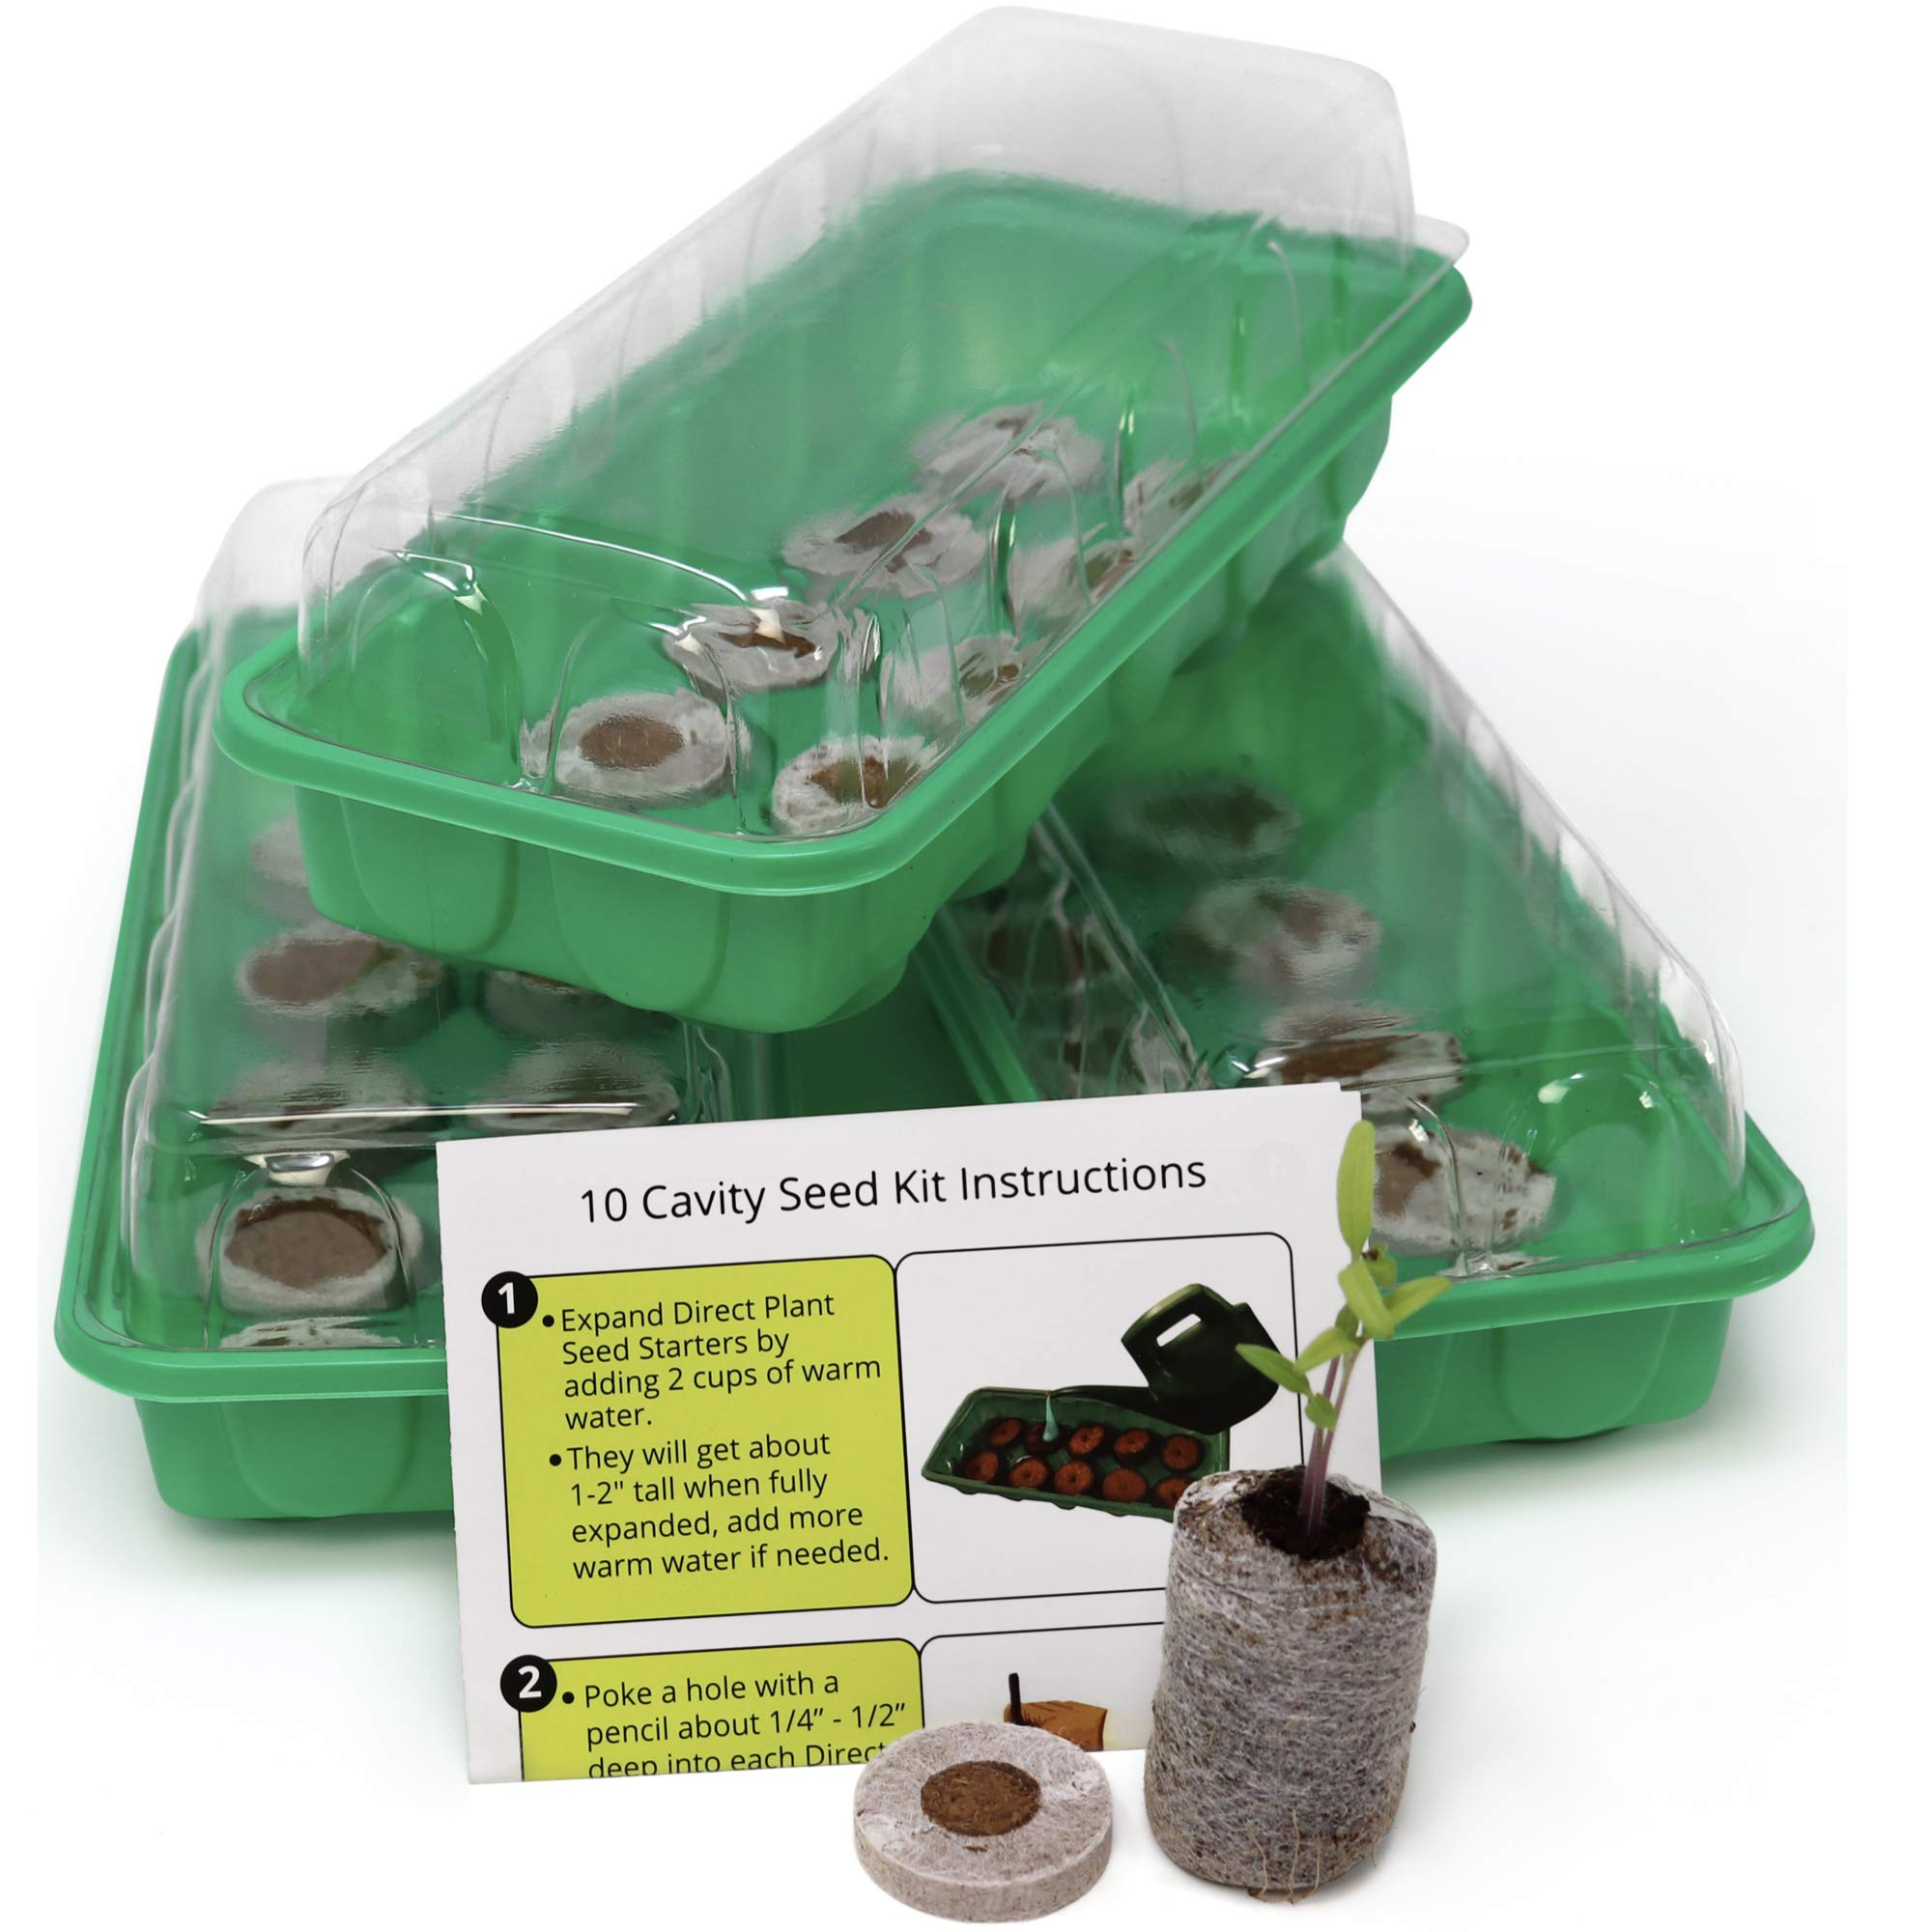 Seed Starting Kit - Complete Supplies - 3 Mini Sturdy Greenhouse Trays with Dome fits on Windowsill, Fiber Soil Pods, Instructions. Indoor/Outdoor Gardening. Grow Herbs, Flowers and Vegetables. by Window Garden